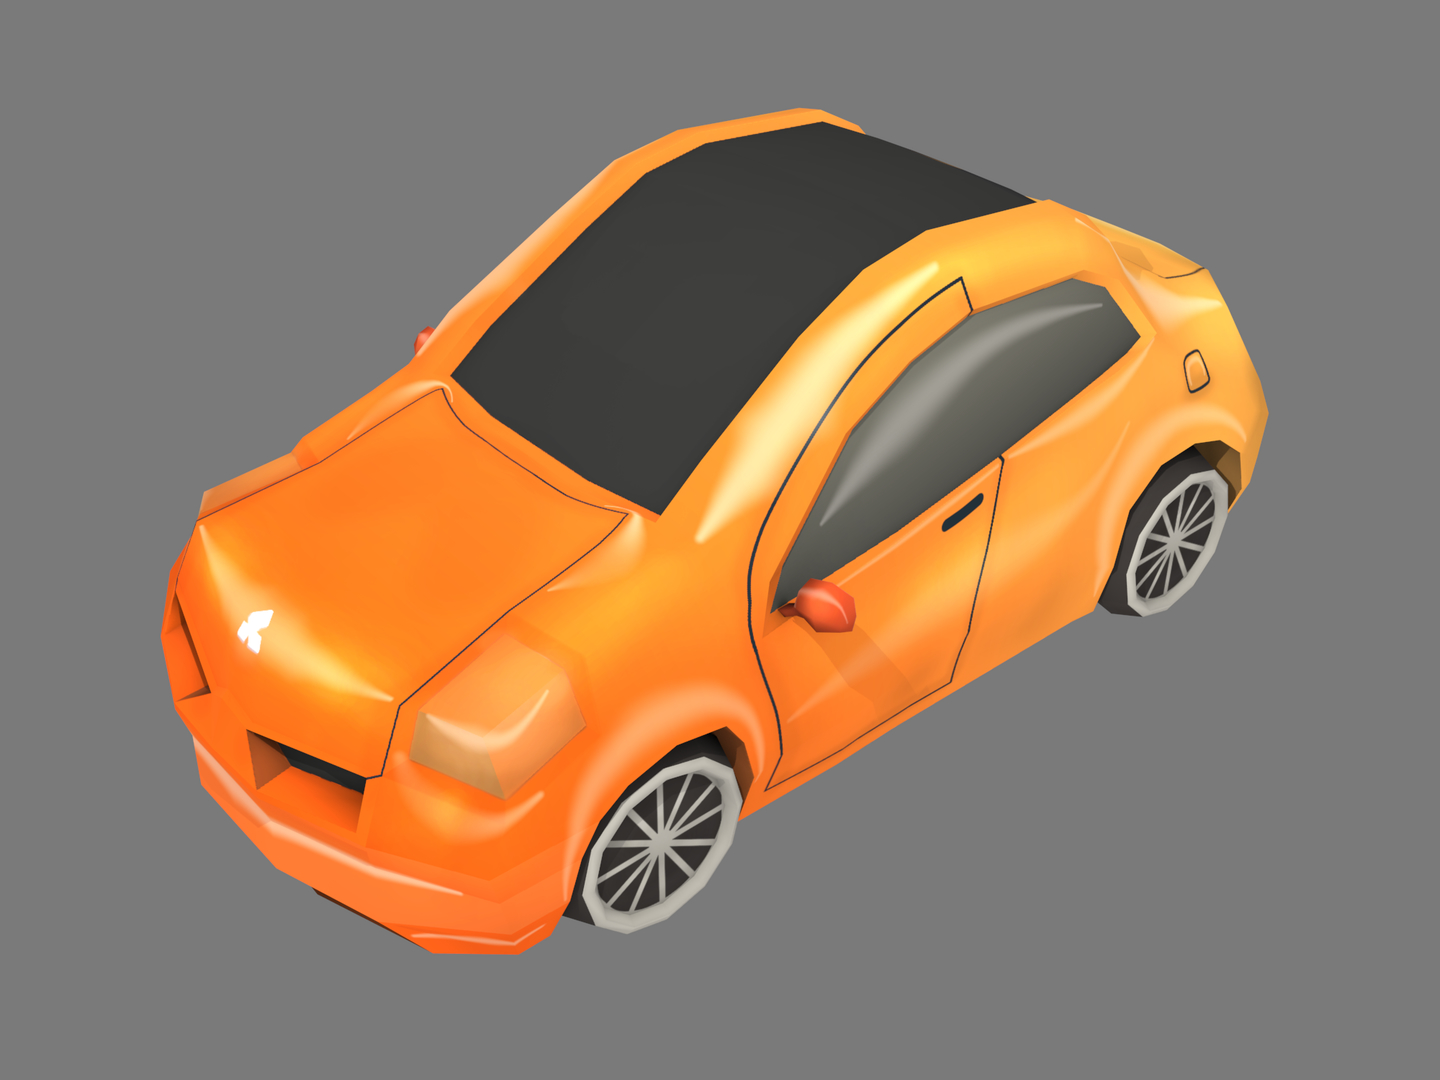 3D orange cartoon car